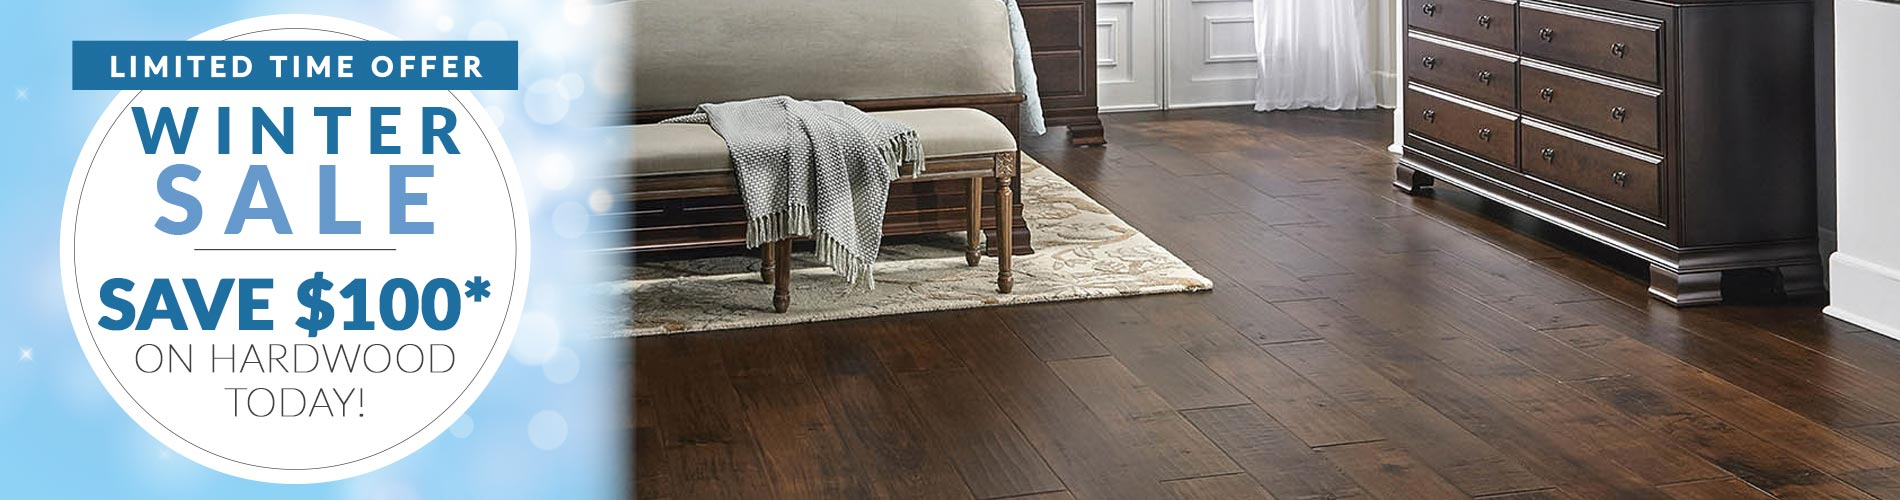 Save $100* on Hardwood Flooring   *Minimum product & installation purchase of $999. Must mention this ad. Cannot combine offers.  Not valid on clearance, in-stock items, and prior purchases. Offer ends 2/29/20.